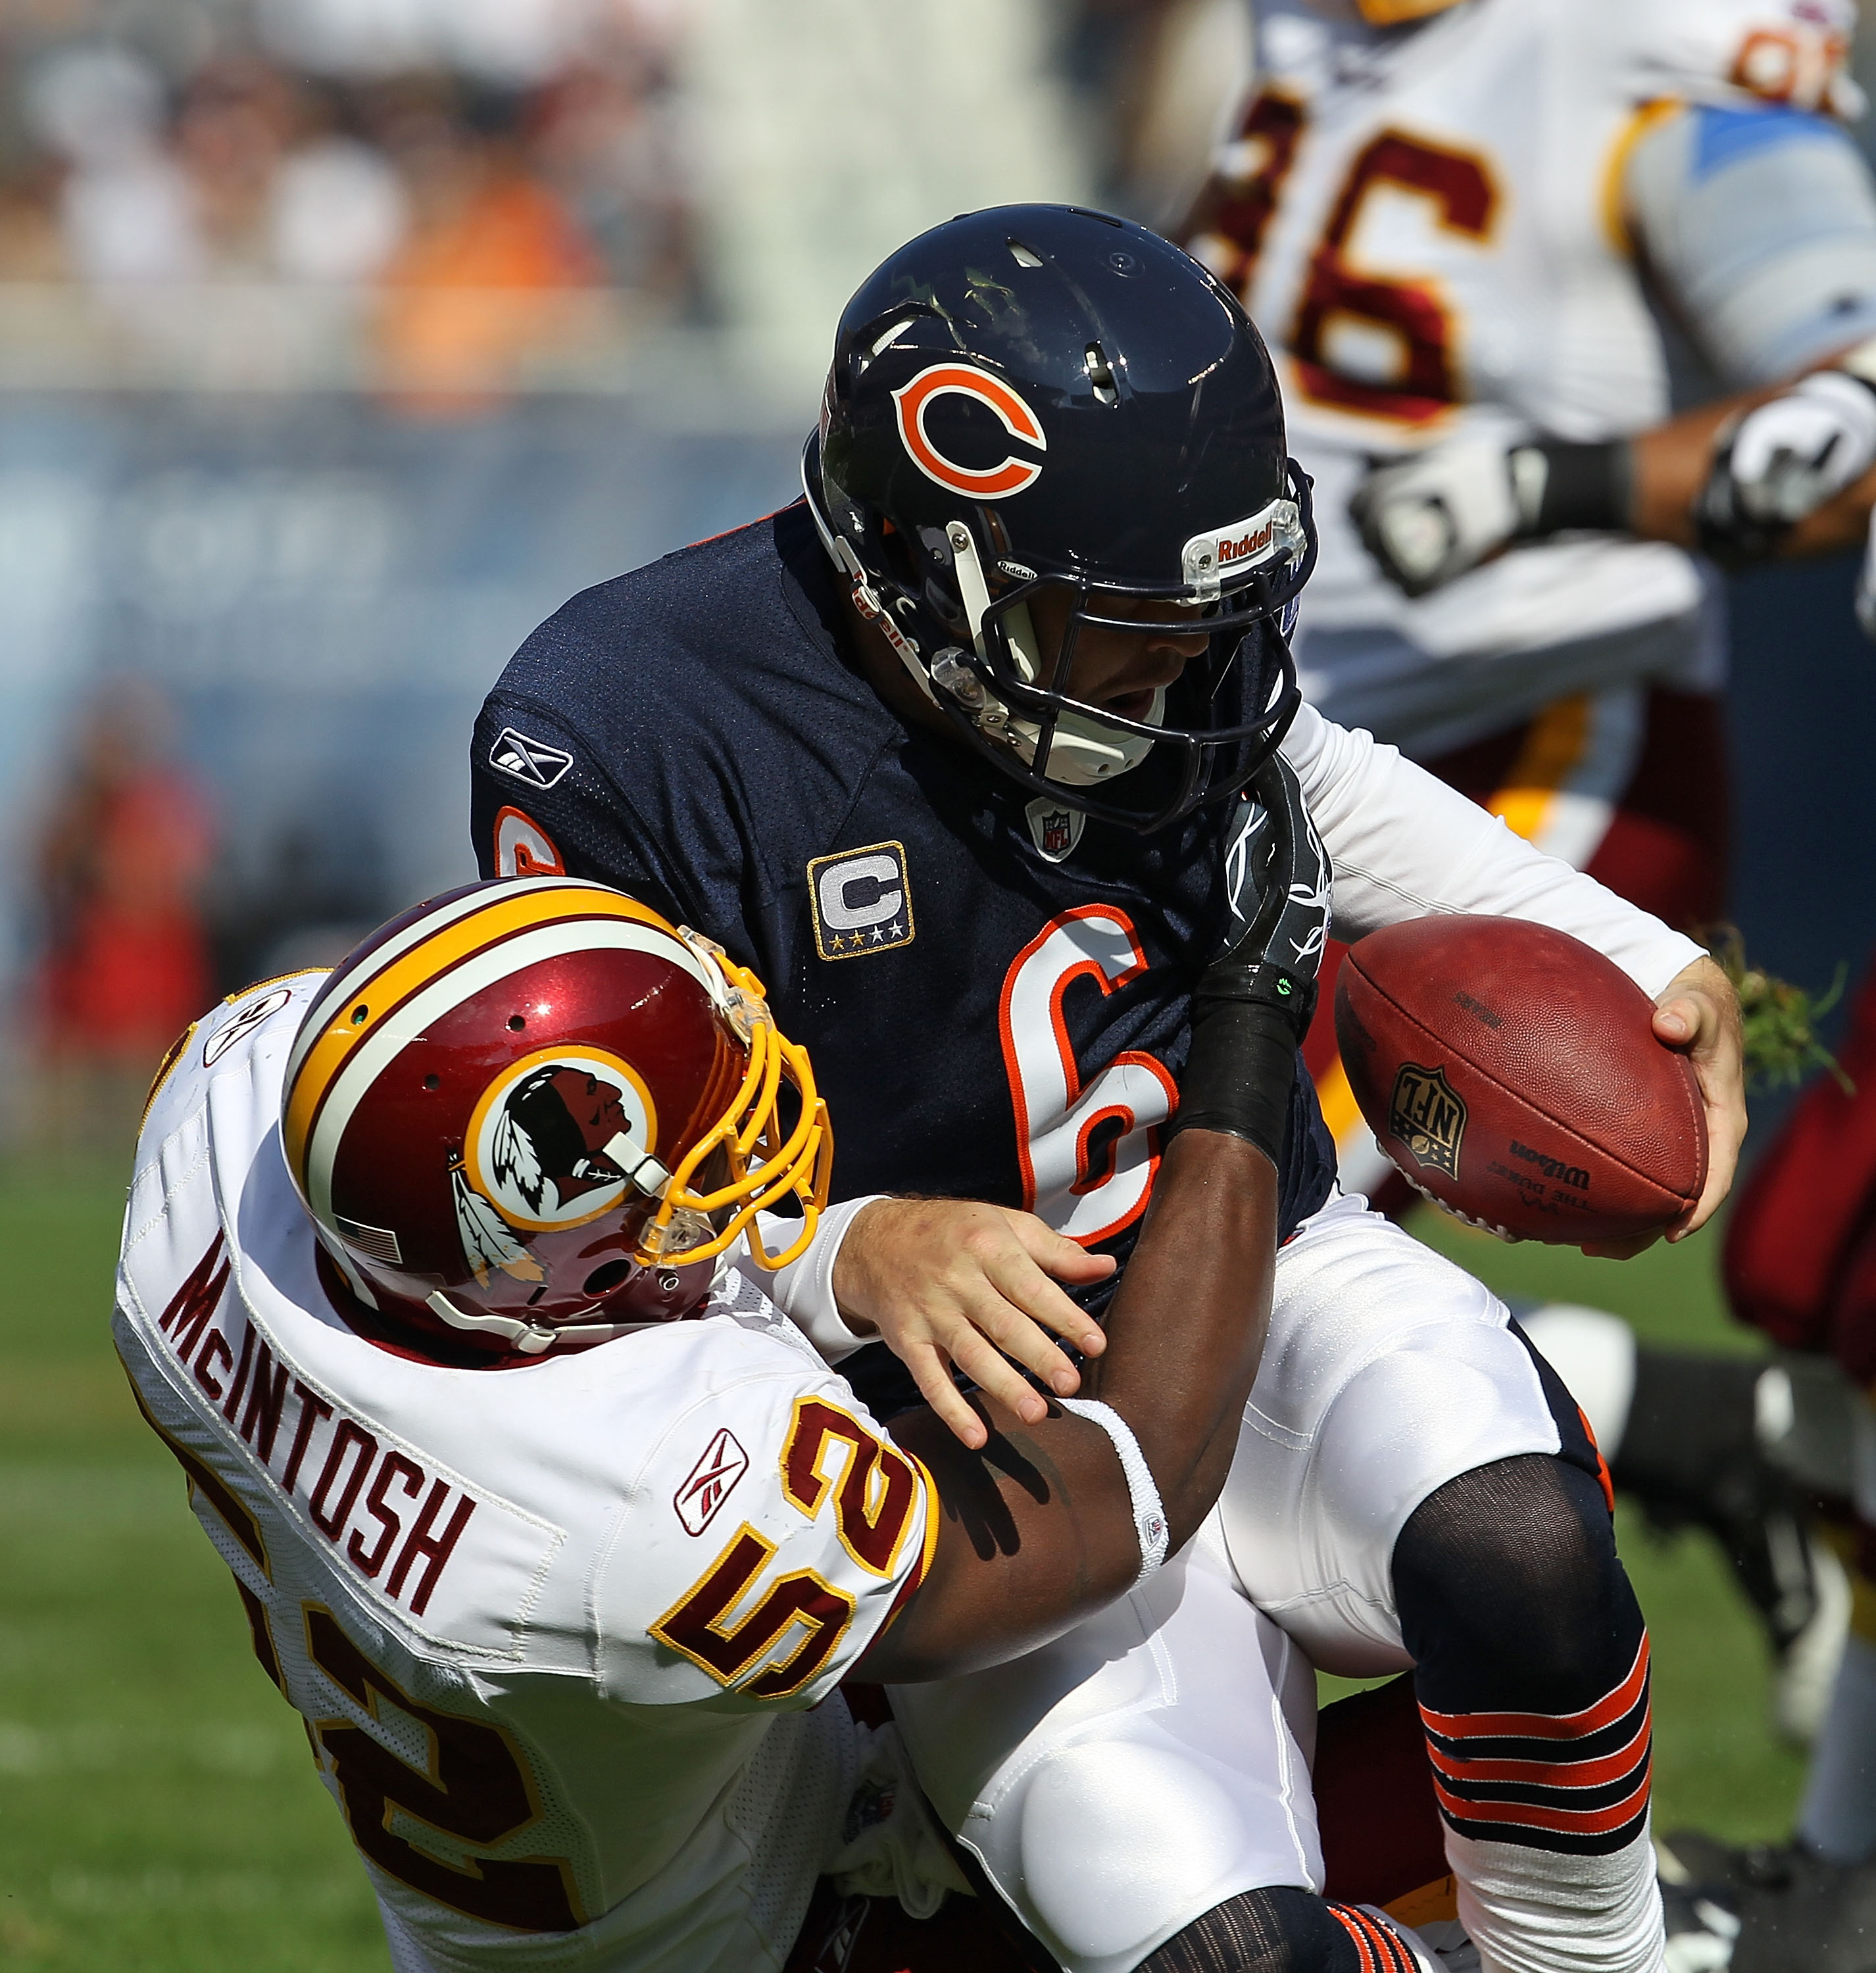 CHICAGO - OCTOBER 24: Jay Cutler #6 of the Chicago Bears is sacked by Rocky McIntosh #52 of the Washington Redskins at Soldier Field on October 24, 2010 in Chicago, Illinois. (Photo by Jonathan Daniel/Getty Images)